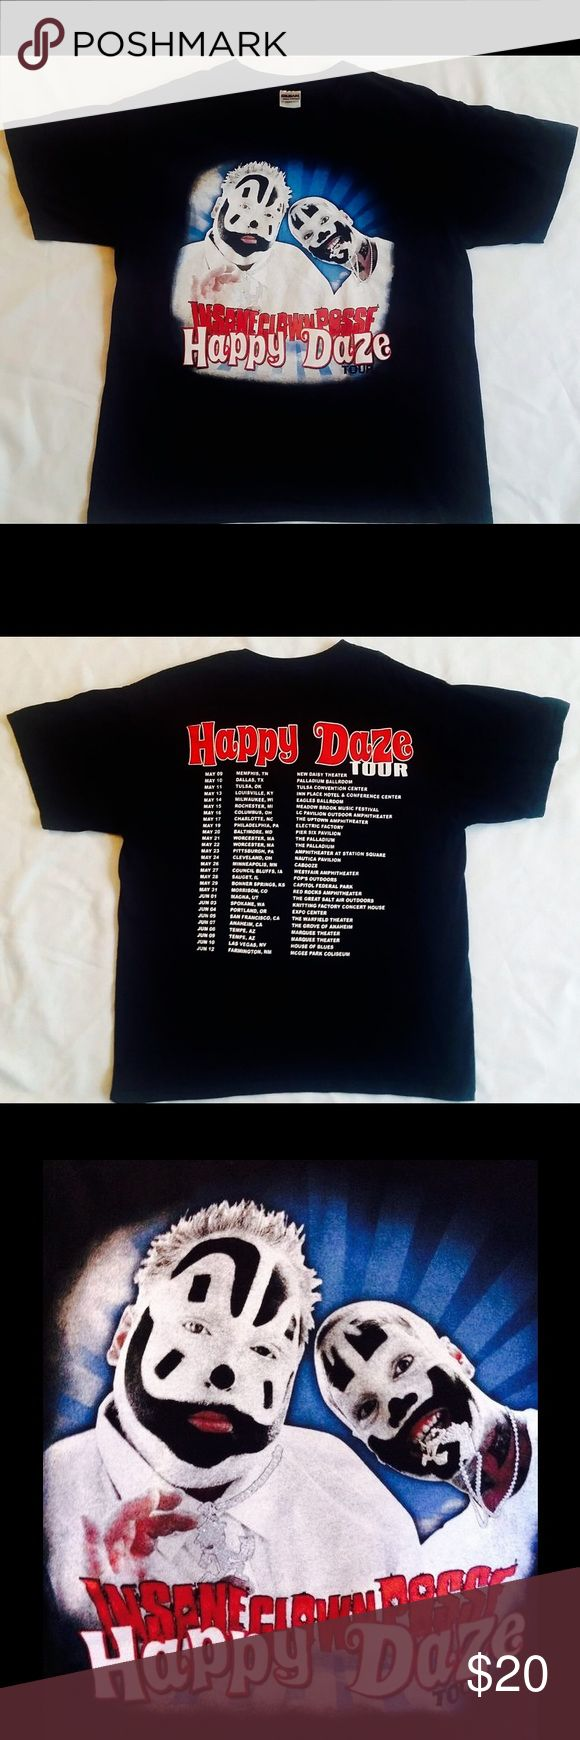 Insane Clown Posse Concert  HAPPY DAZE TOUR INSANE CLOWN POSSE HAPPY DAZE TOUR SHORT SLEEVE T-SHIRT.  Printed on a Gildan Ultra Cotton Tee  100% Cotton  Used once for the concert, GREAT CONDITION LIKE NEW. Tour Concert  Shirts Tees - Short Sleeve